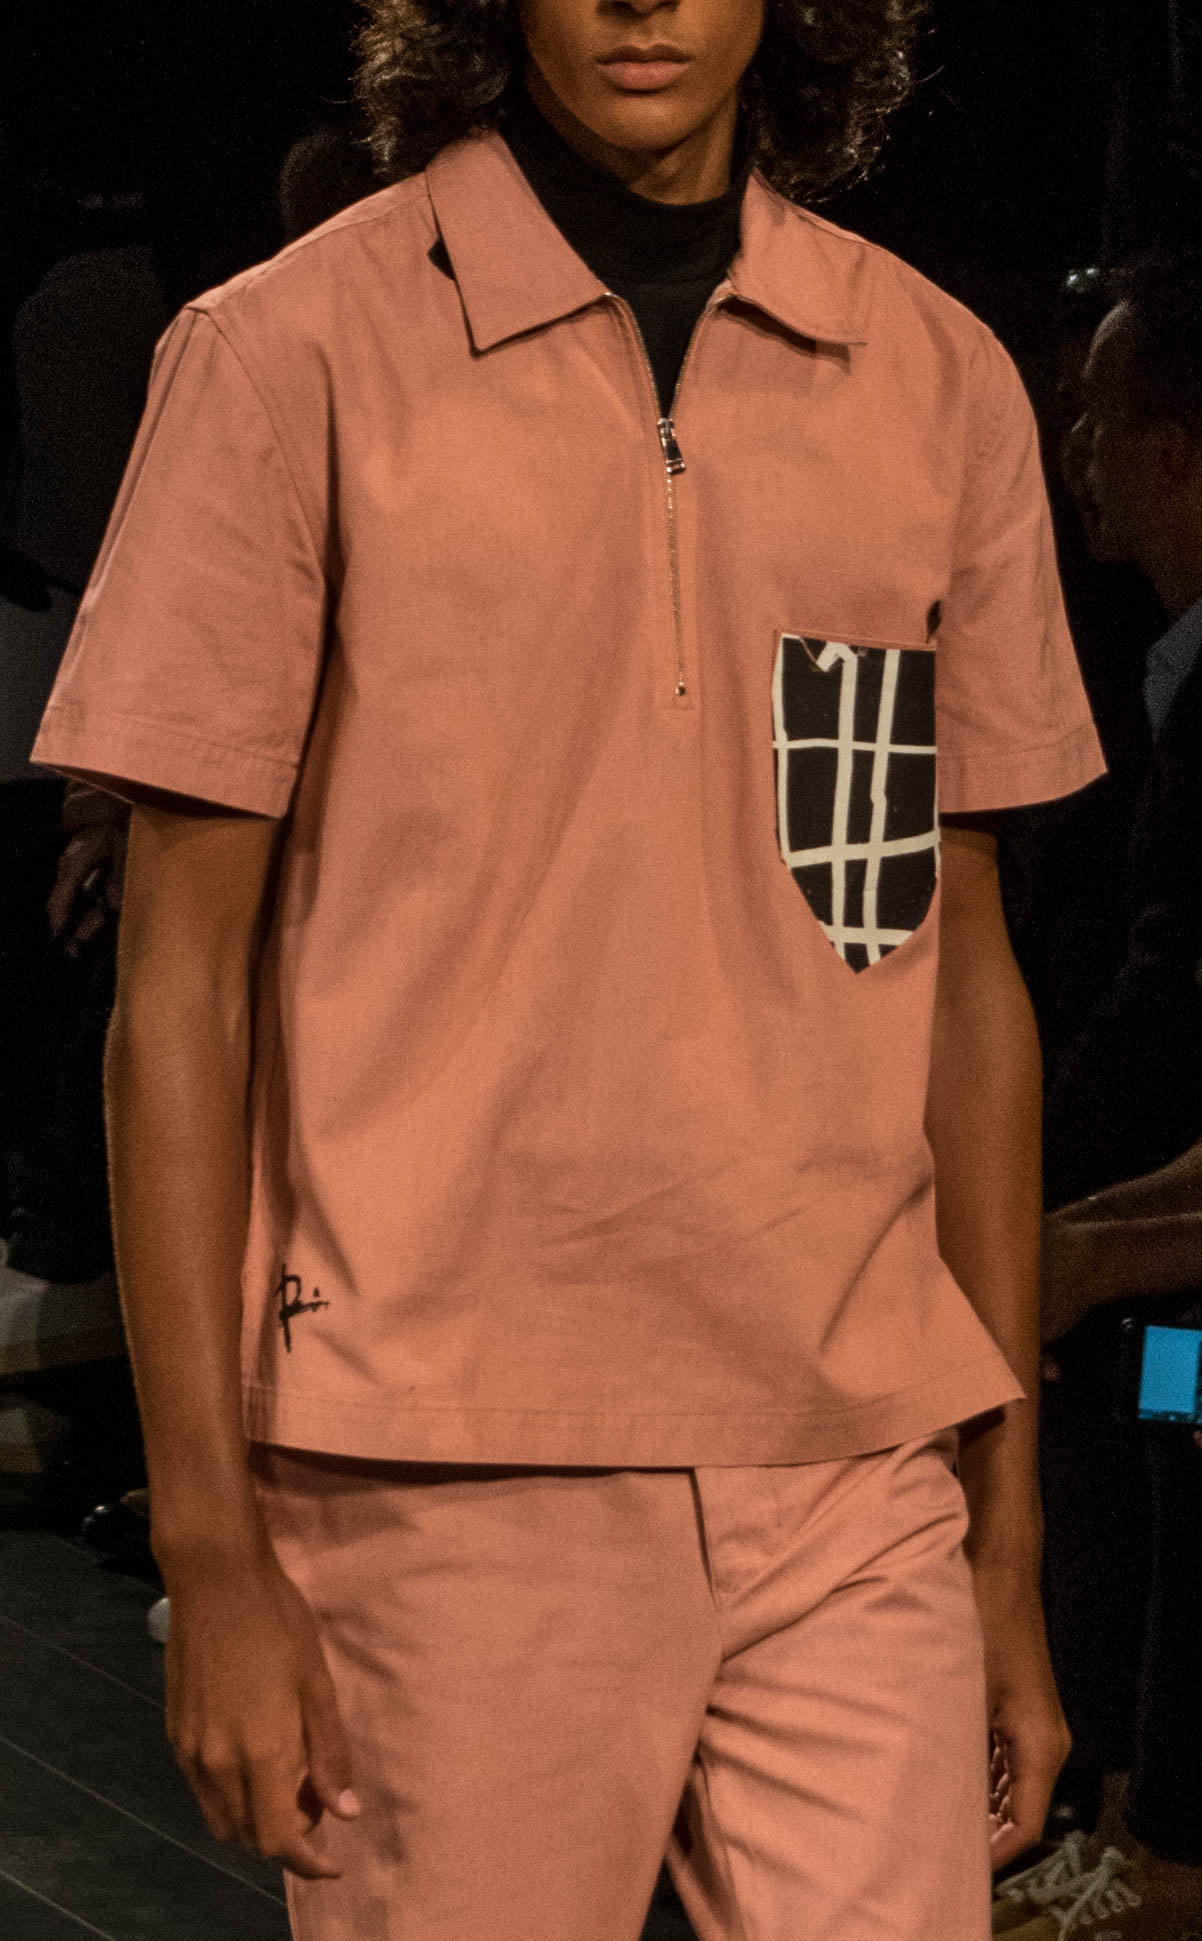 36 Rochambeau SS18 Runway Show - New York Fashion Week 2017 - FilterGrade Blog